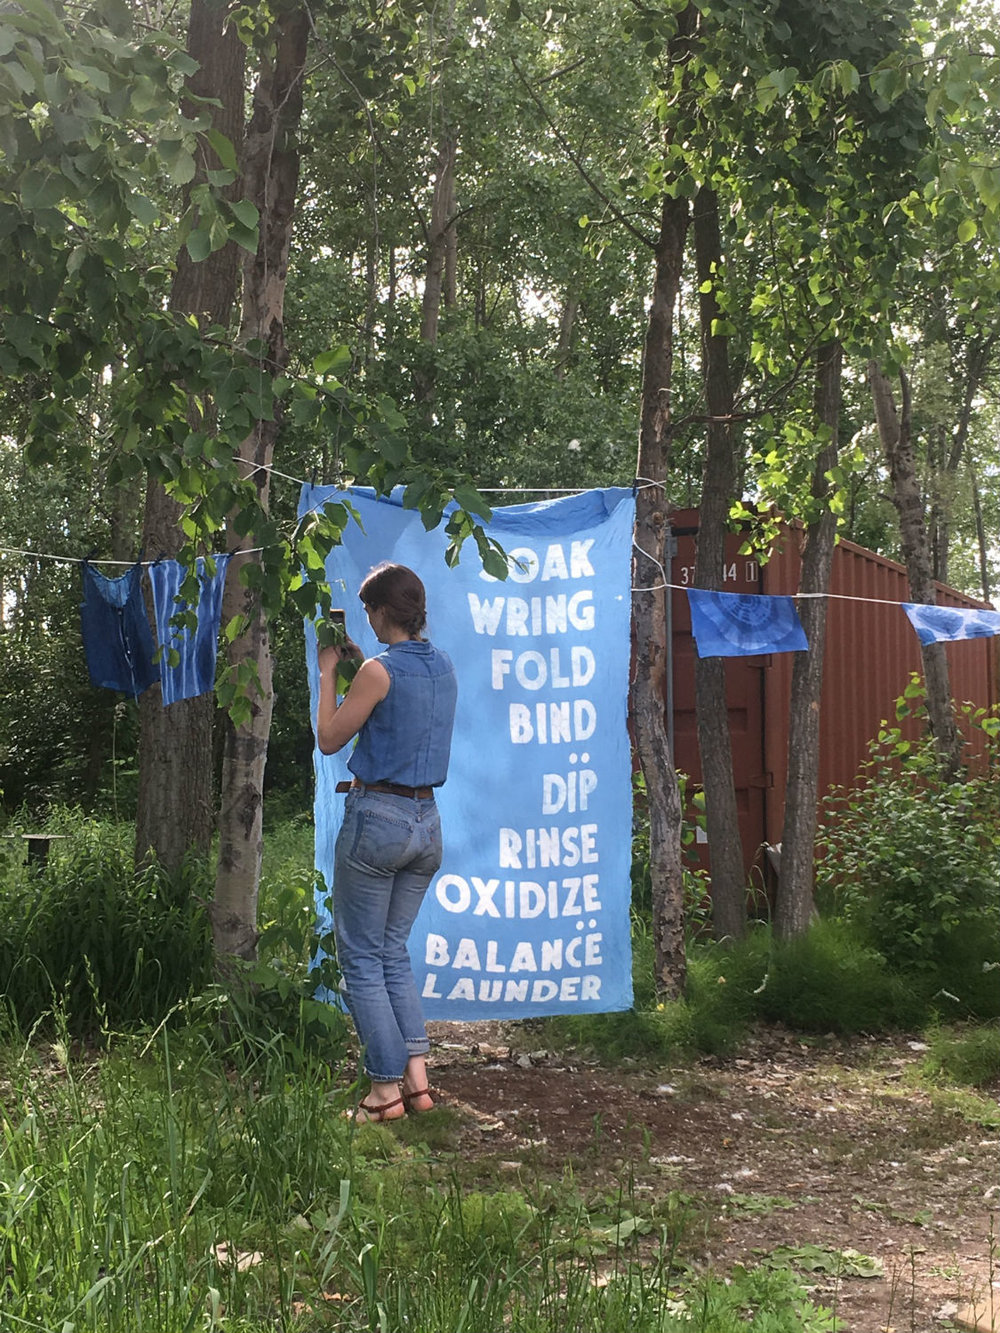 Indigo dying retreat